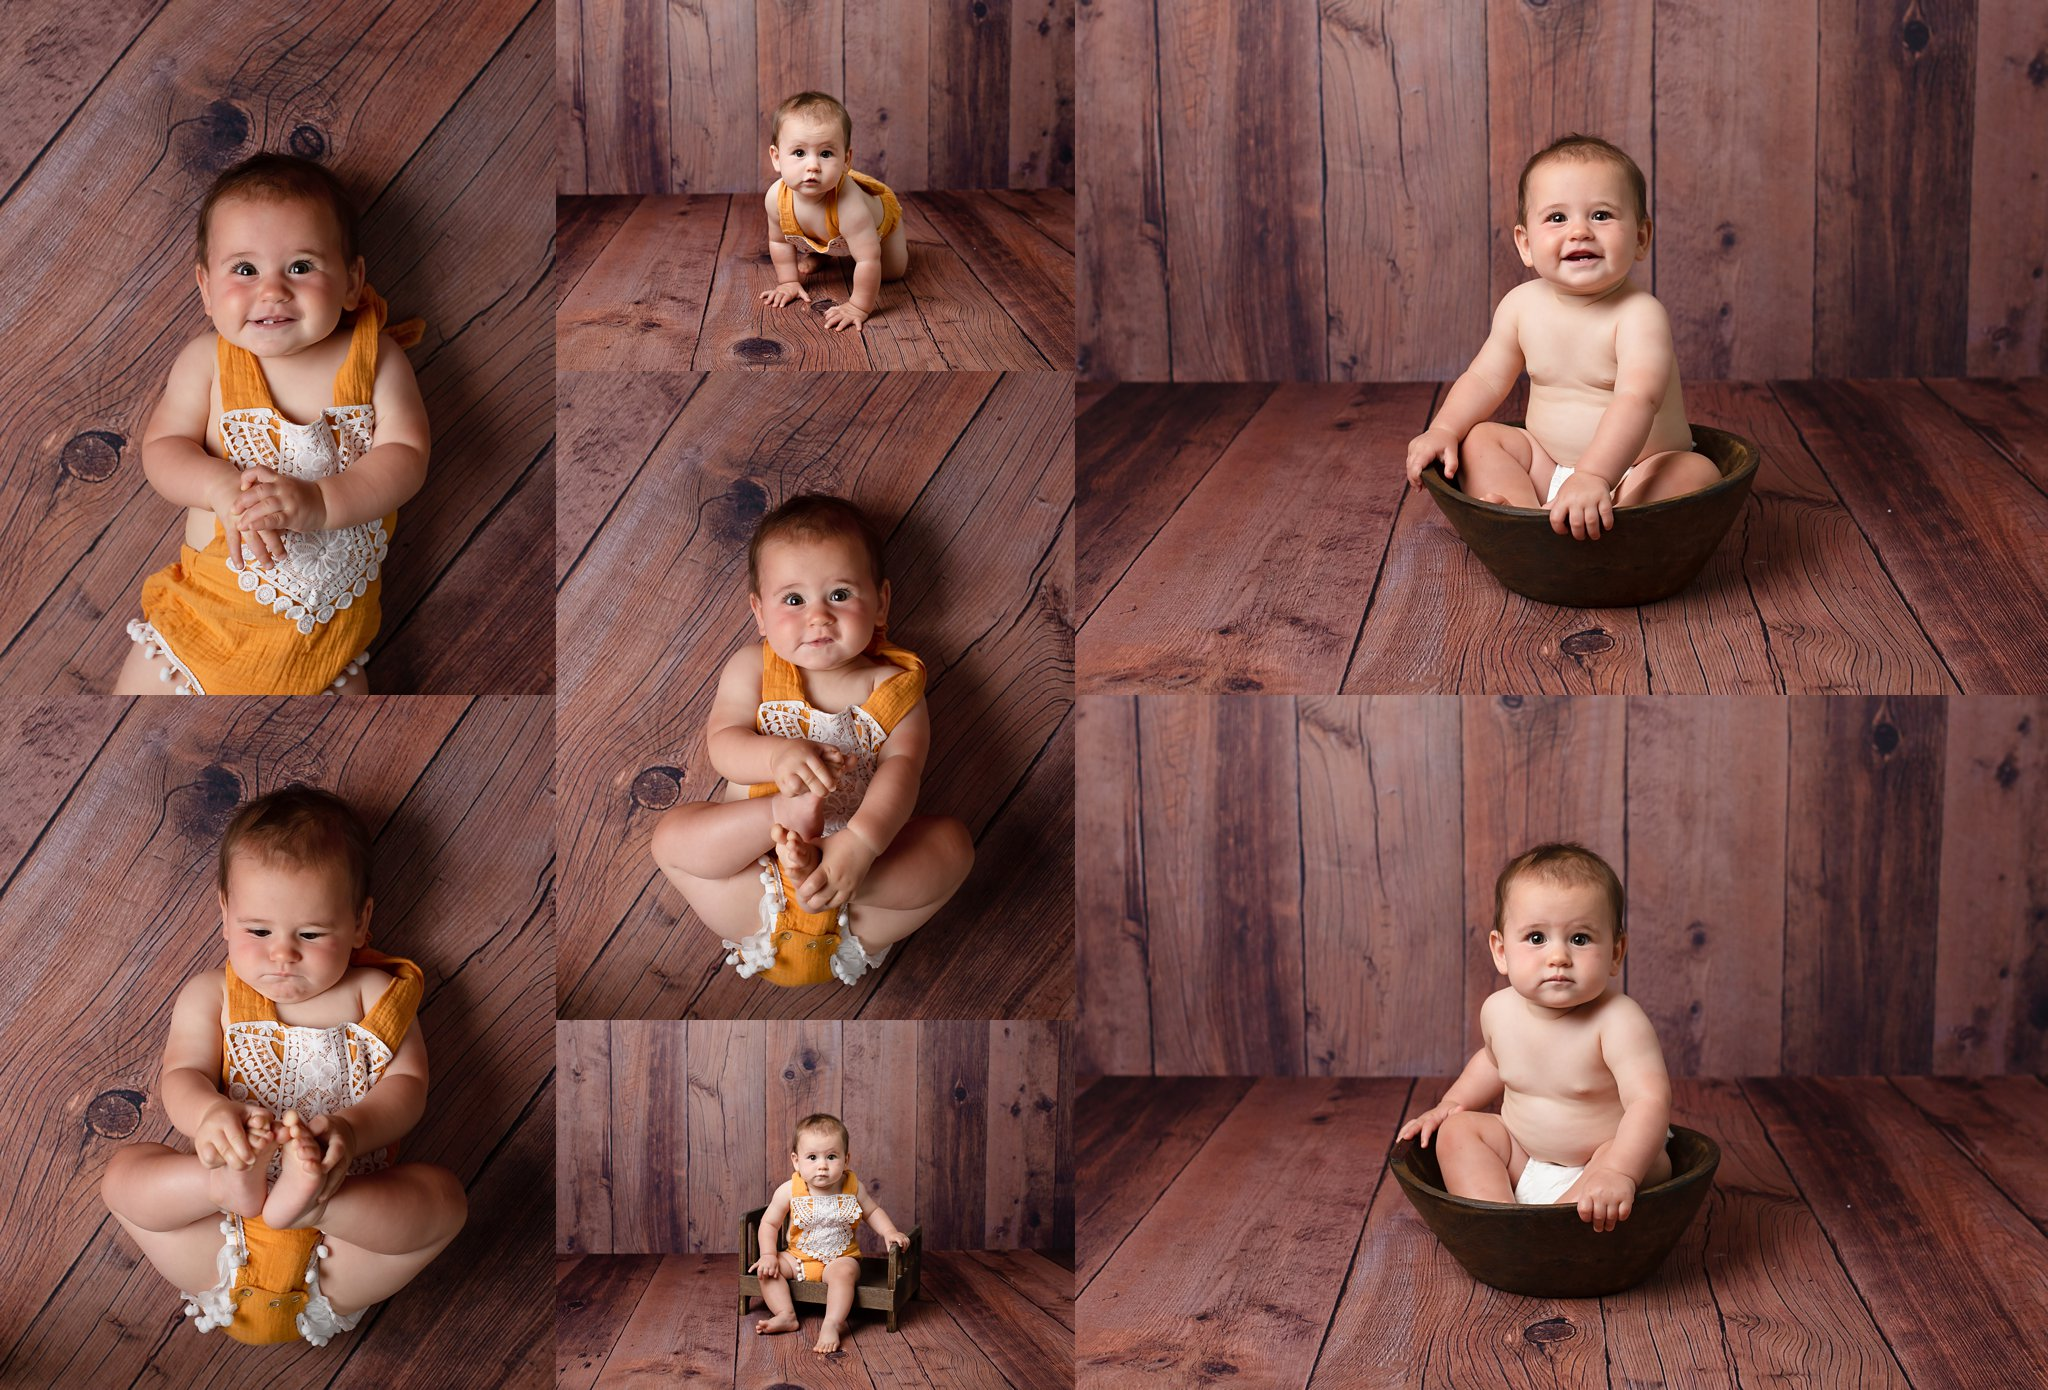 Raleigh_Sitter_Photography_Session_3.jpg